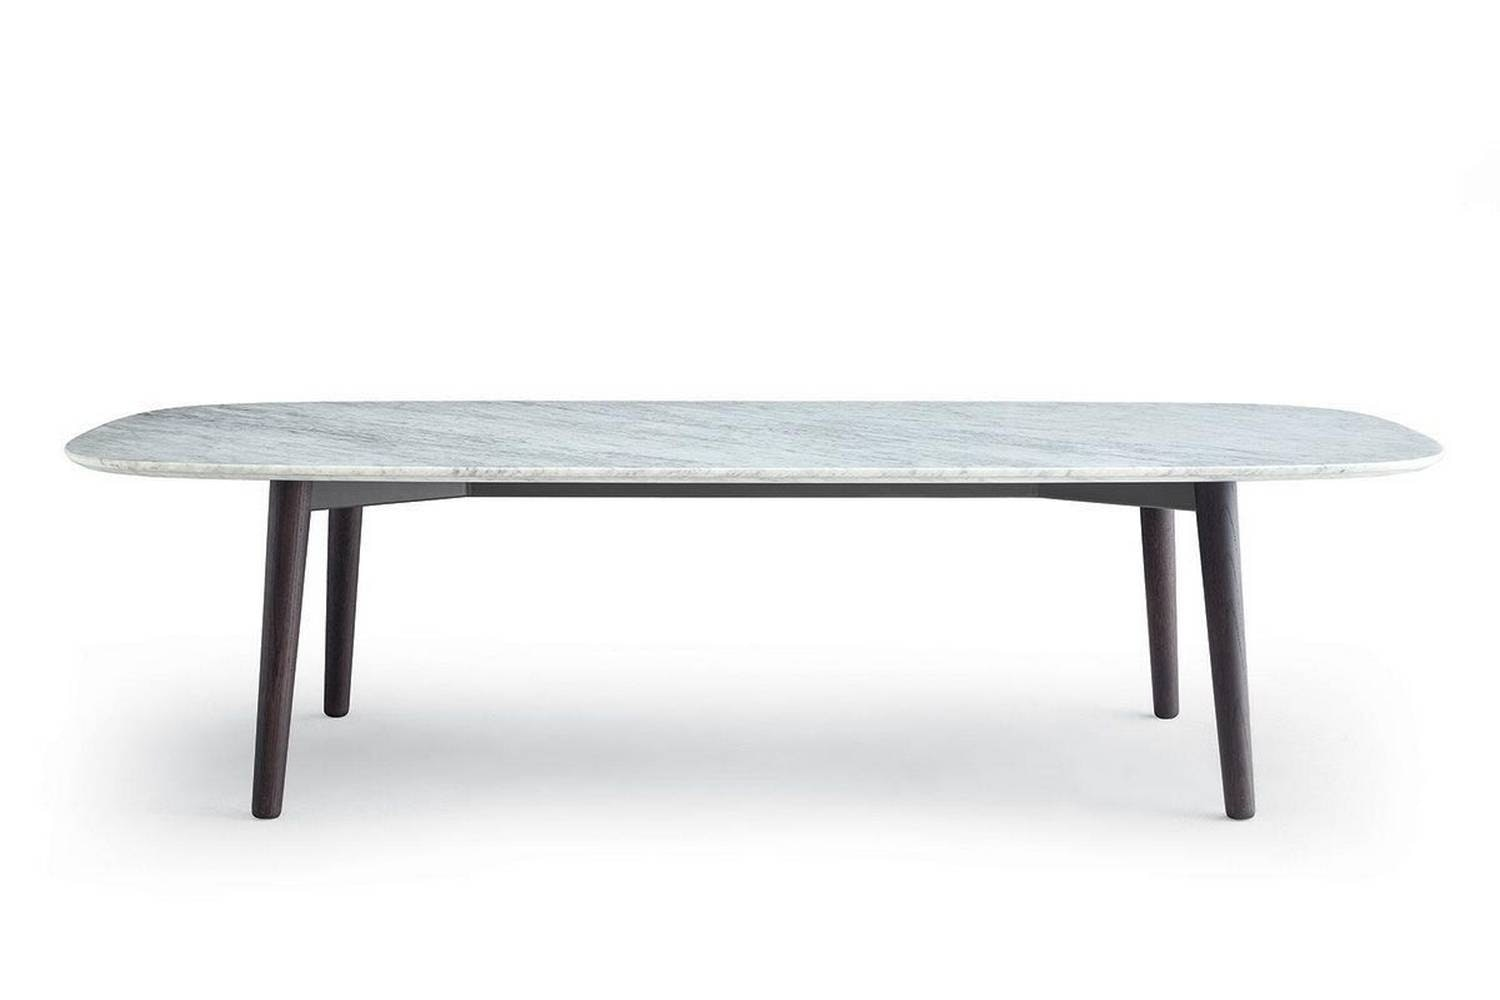 Mad Dining Table By Marcel Wanders For Poliform Poliform